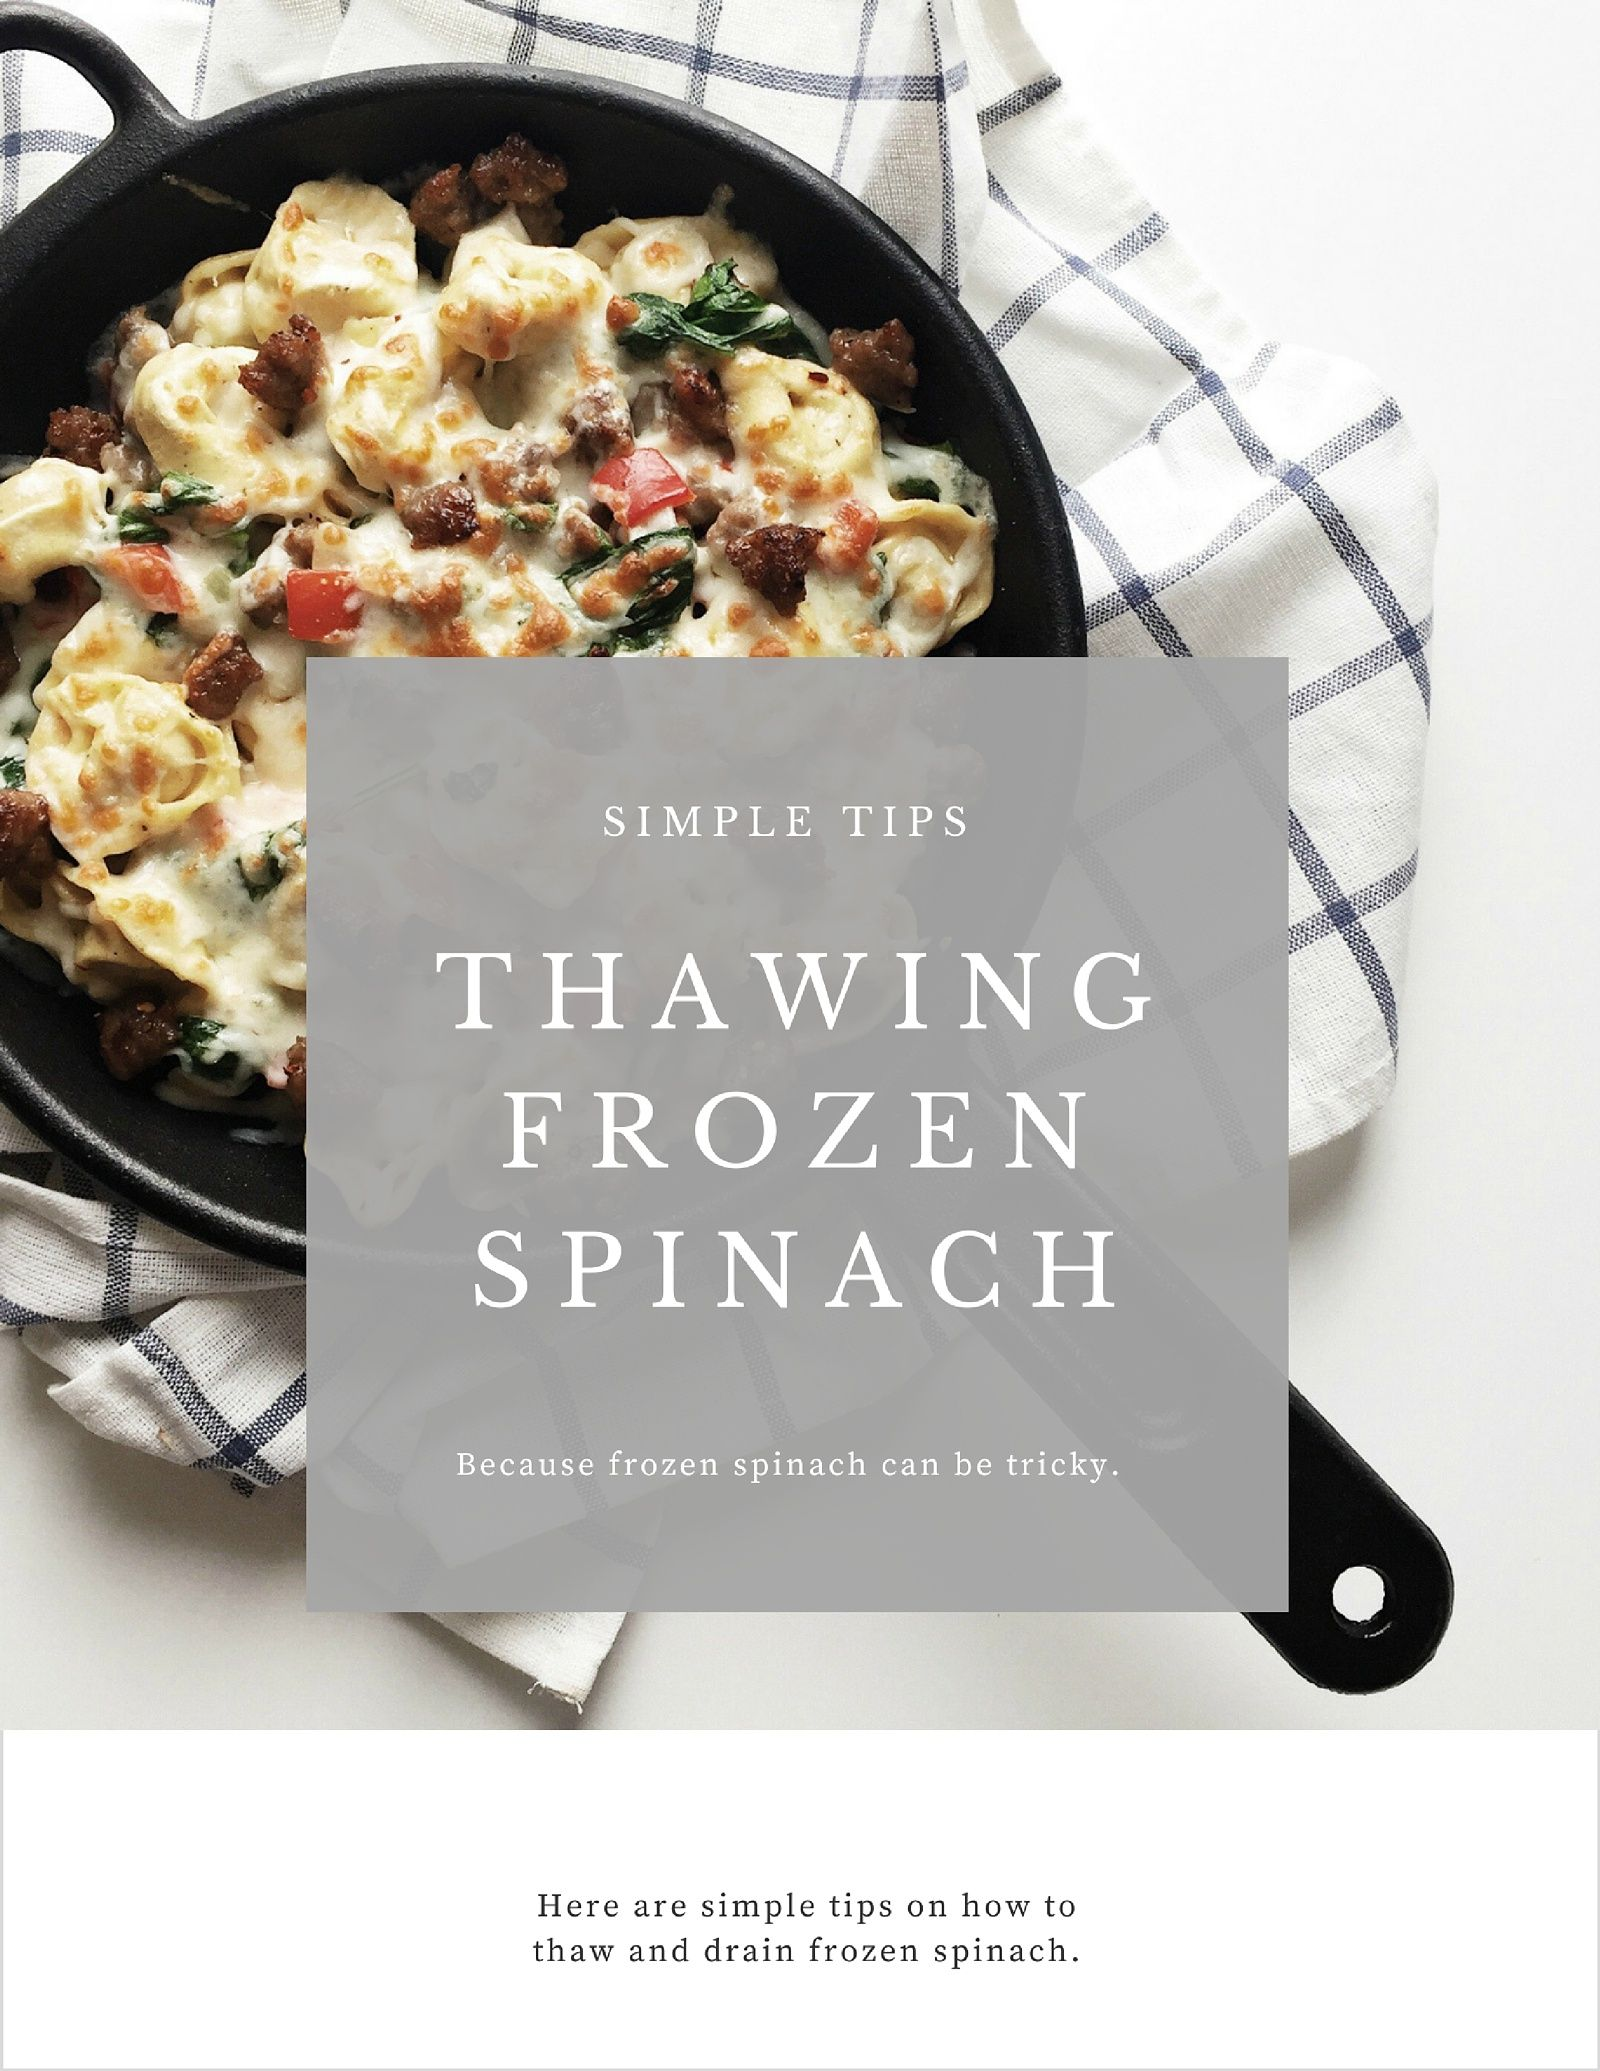 Tips for Thawing and Draining Frozen Spinach How To